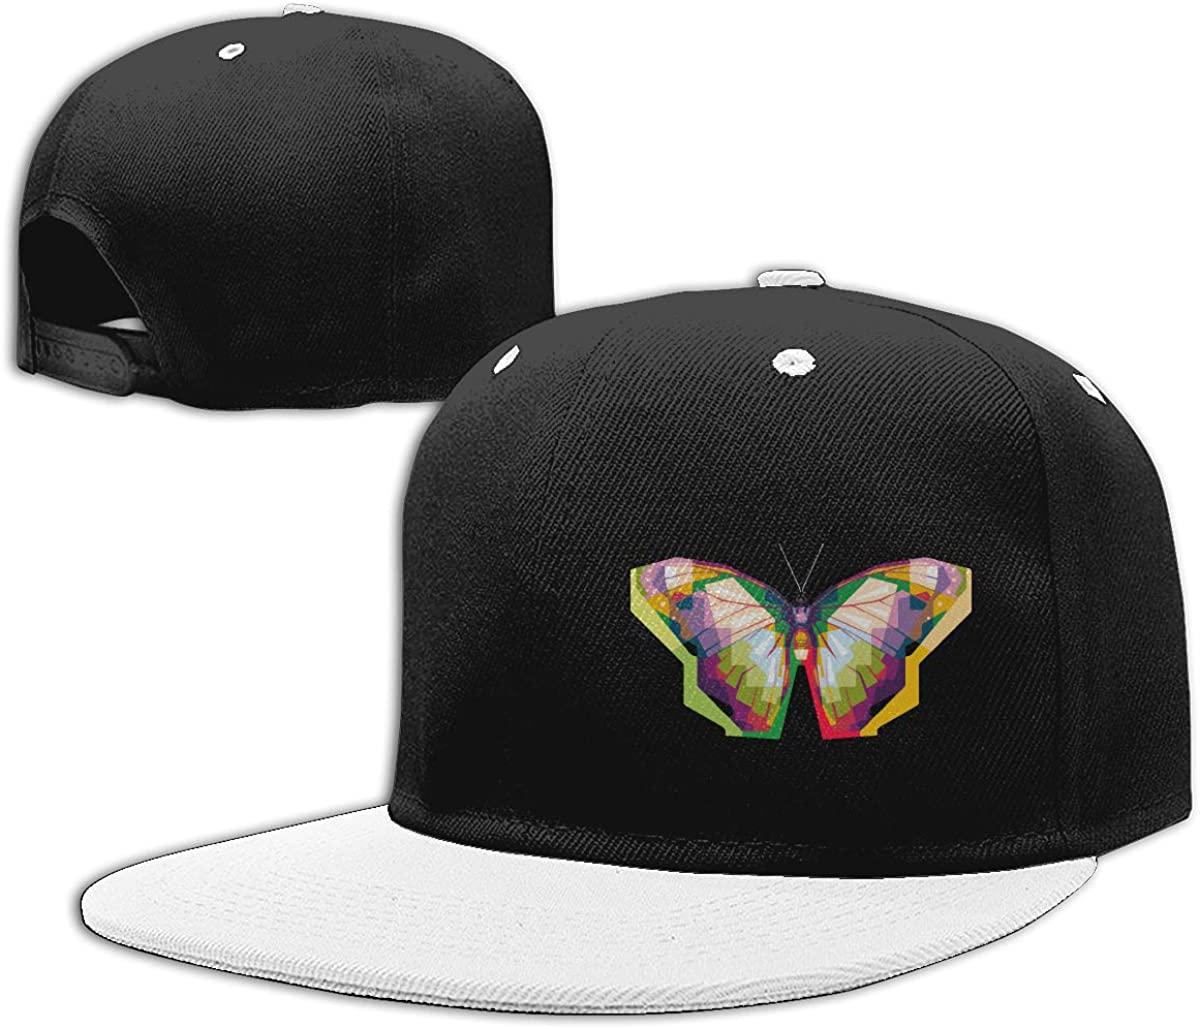 Butterfly Adjustable Hip Hop Baseball Caps Women Men Hiphop Cap